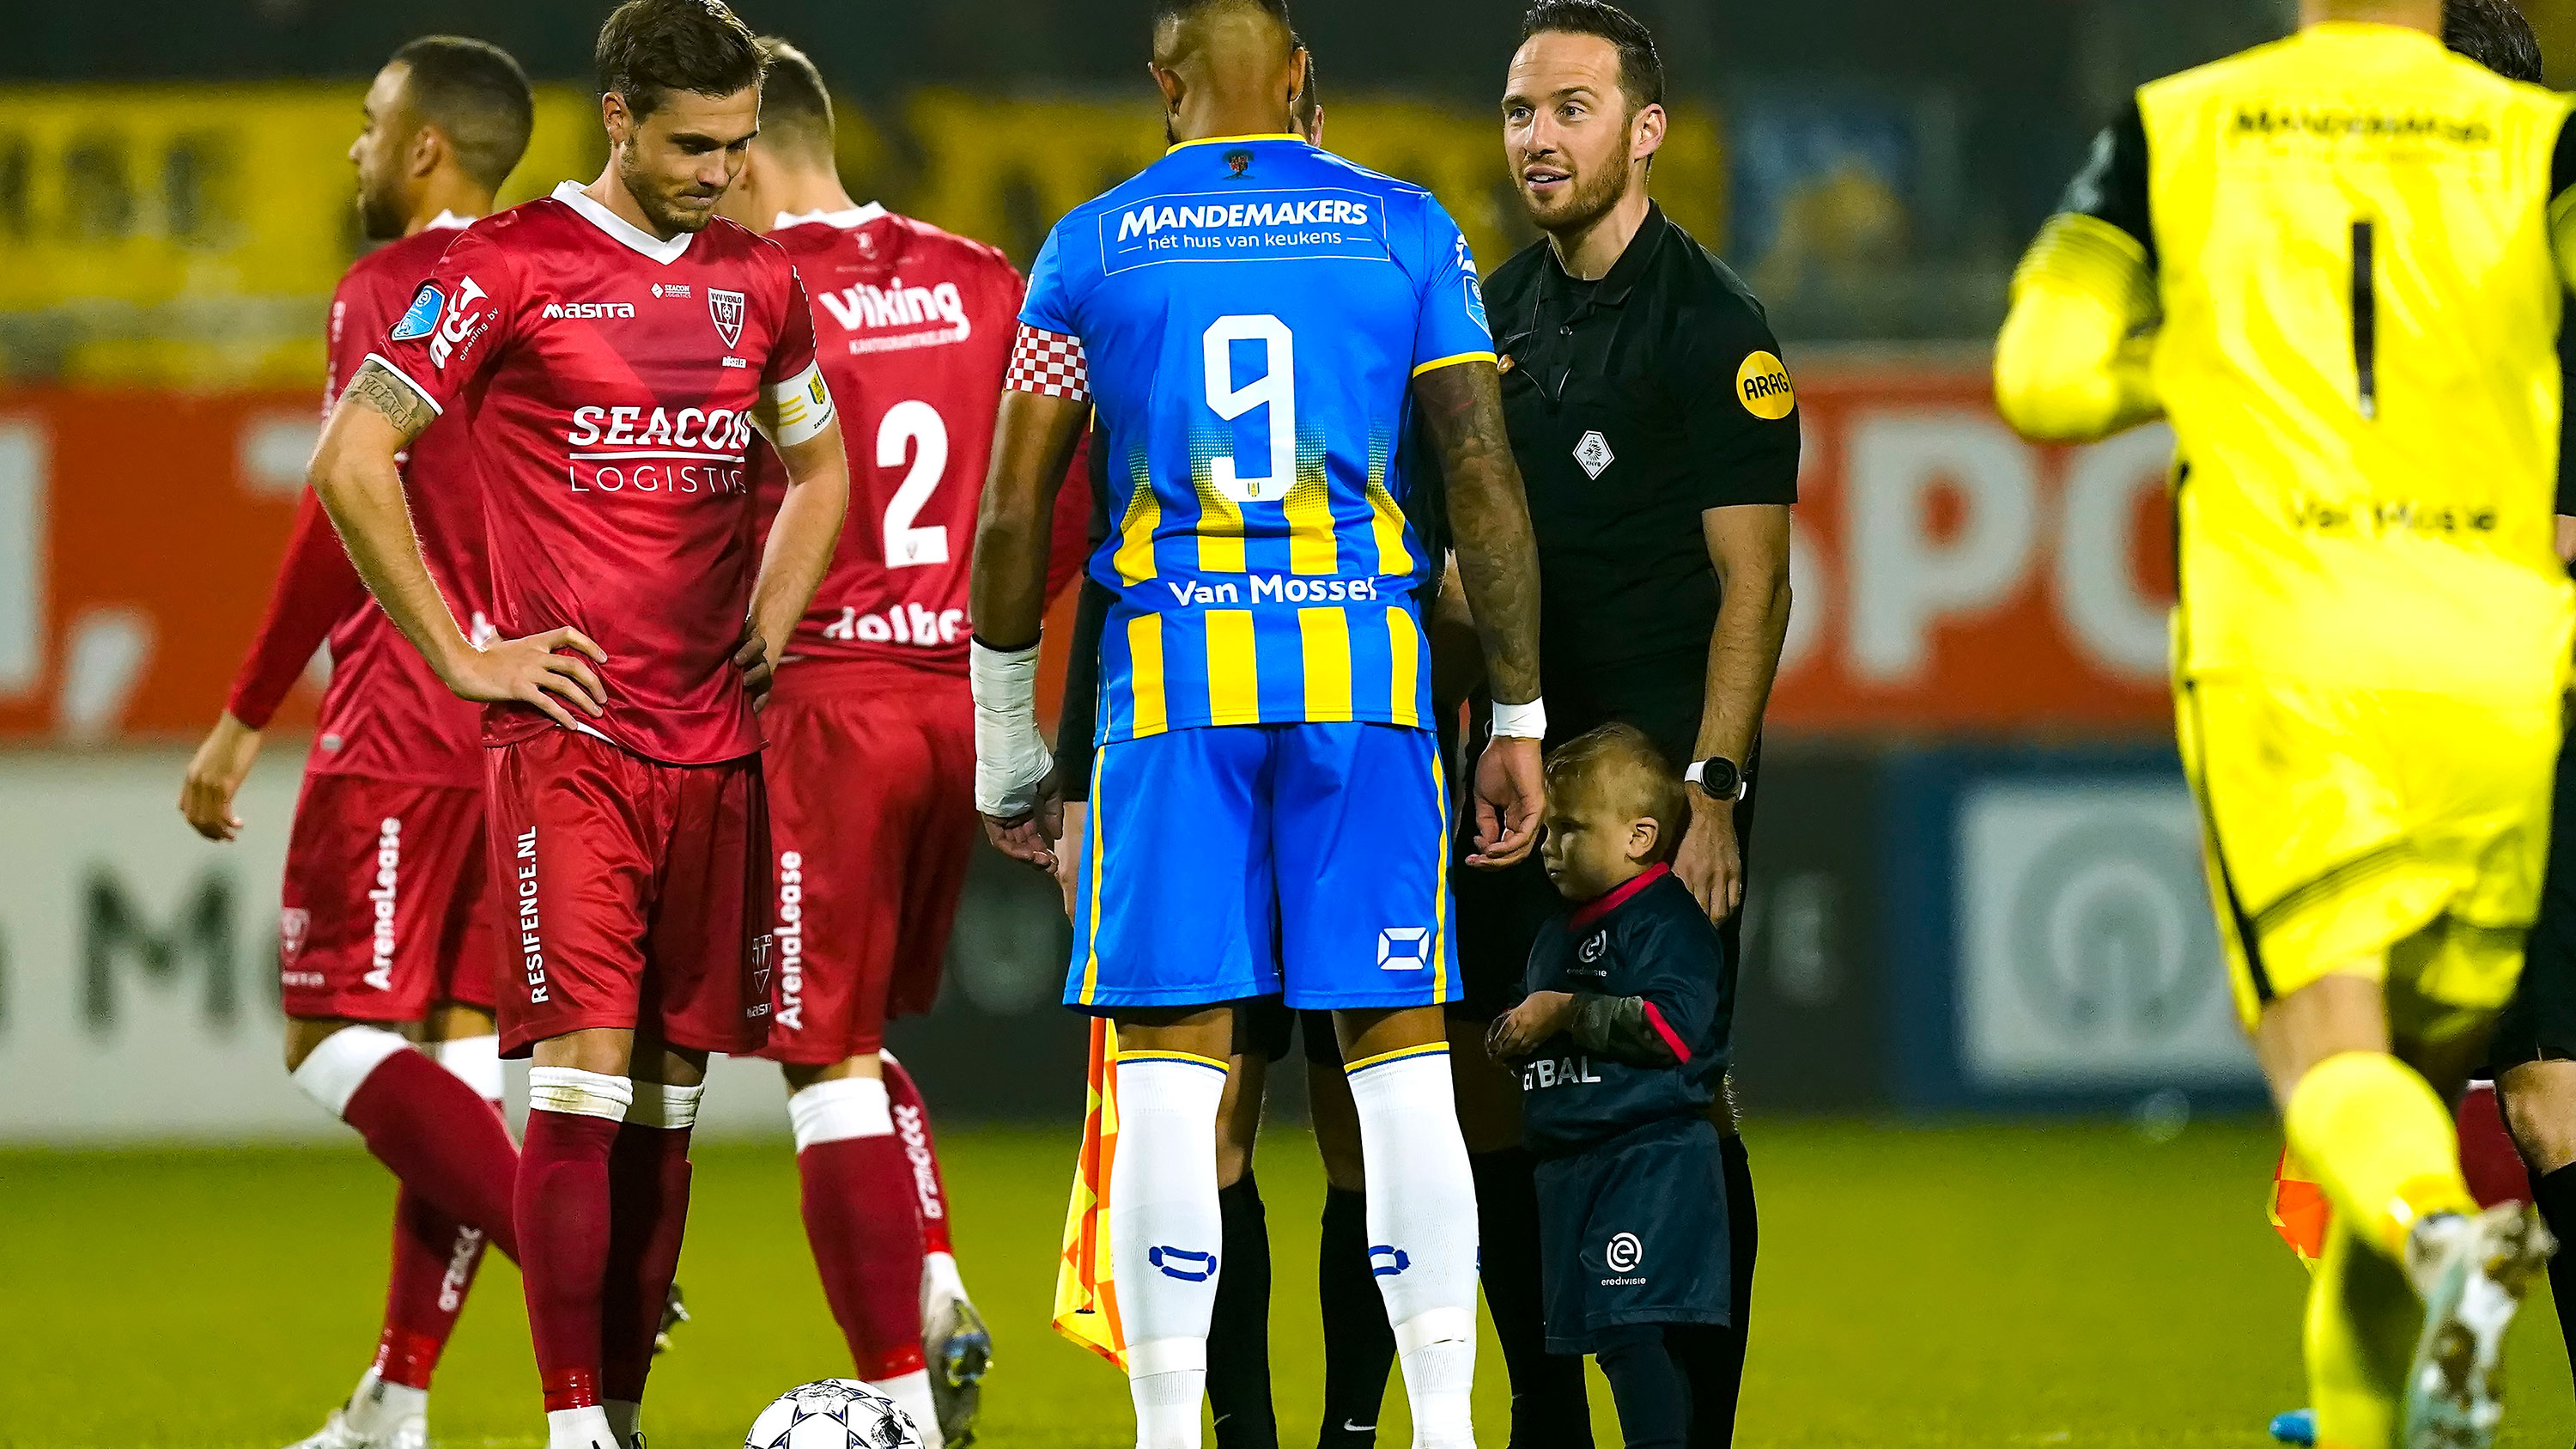 Dutch soccer clash kicks off with adorably novel coin toss